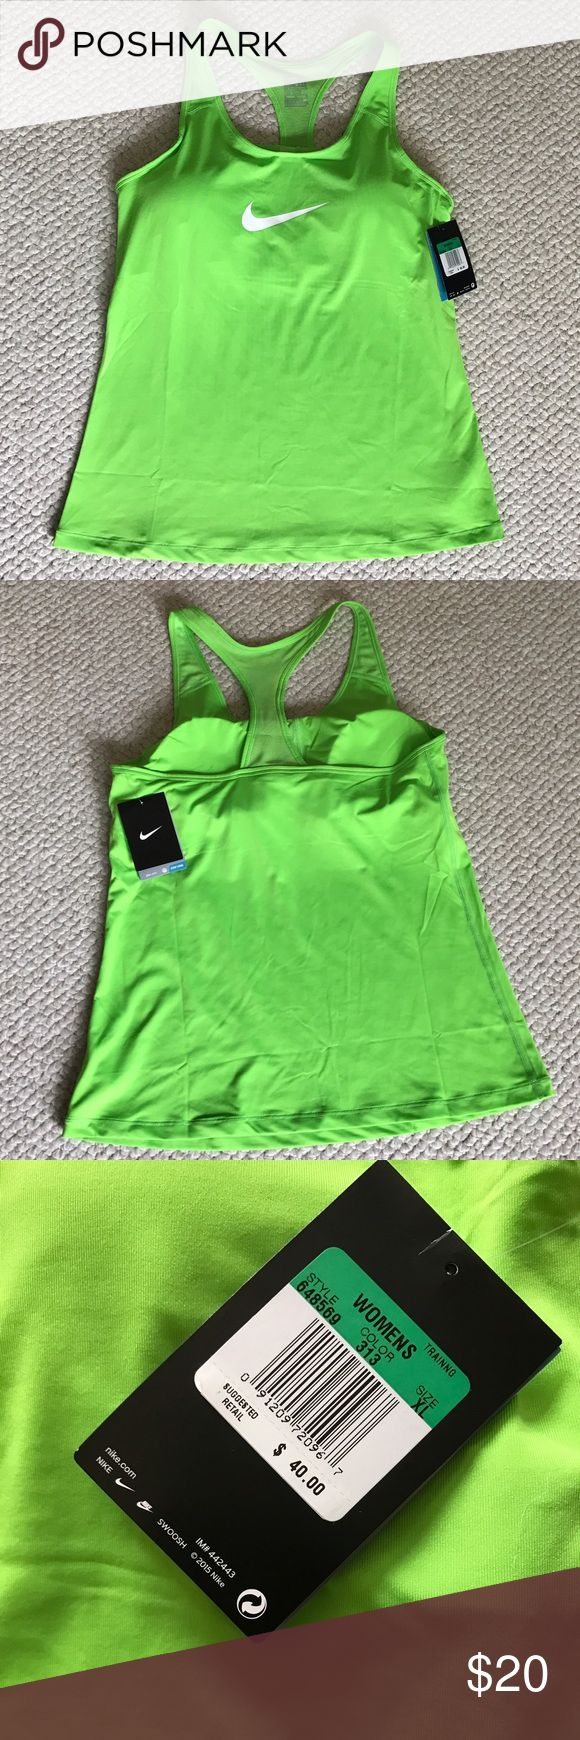 Neon Green Nike Compression Top-built in bra Built in bra to give you additional support. I like it Bc it covers up the ladies when it gets cold and you don't need anyone else to tell you that you look cold. 😊. Nike Flex Swoosh from Nike. Two in one, support and comfort The Nike Flex Swoosh Women's Training Sports Top is made with sweat wicking stretch fabric, a racerback, built in bra for supportive fit that moves with you during your workout., Benefits Dri FIT fabric helps keep you dry…